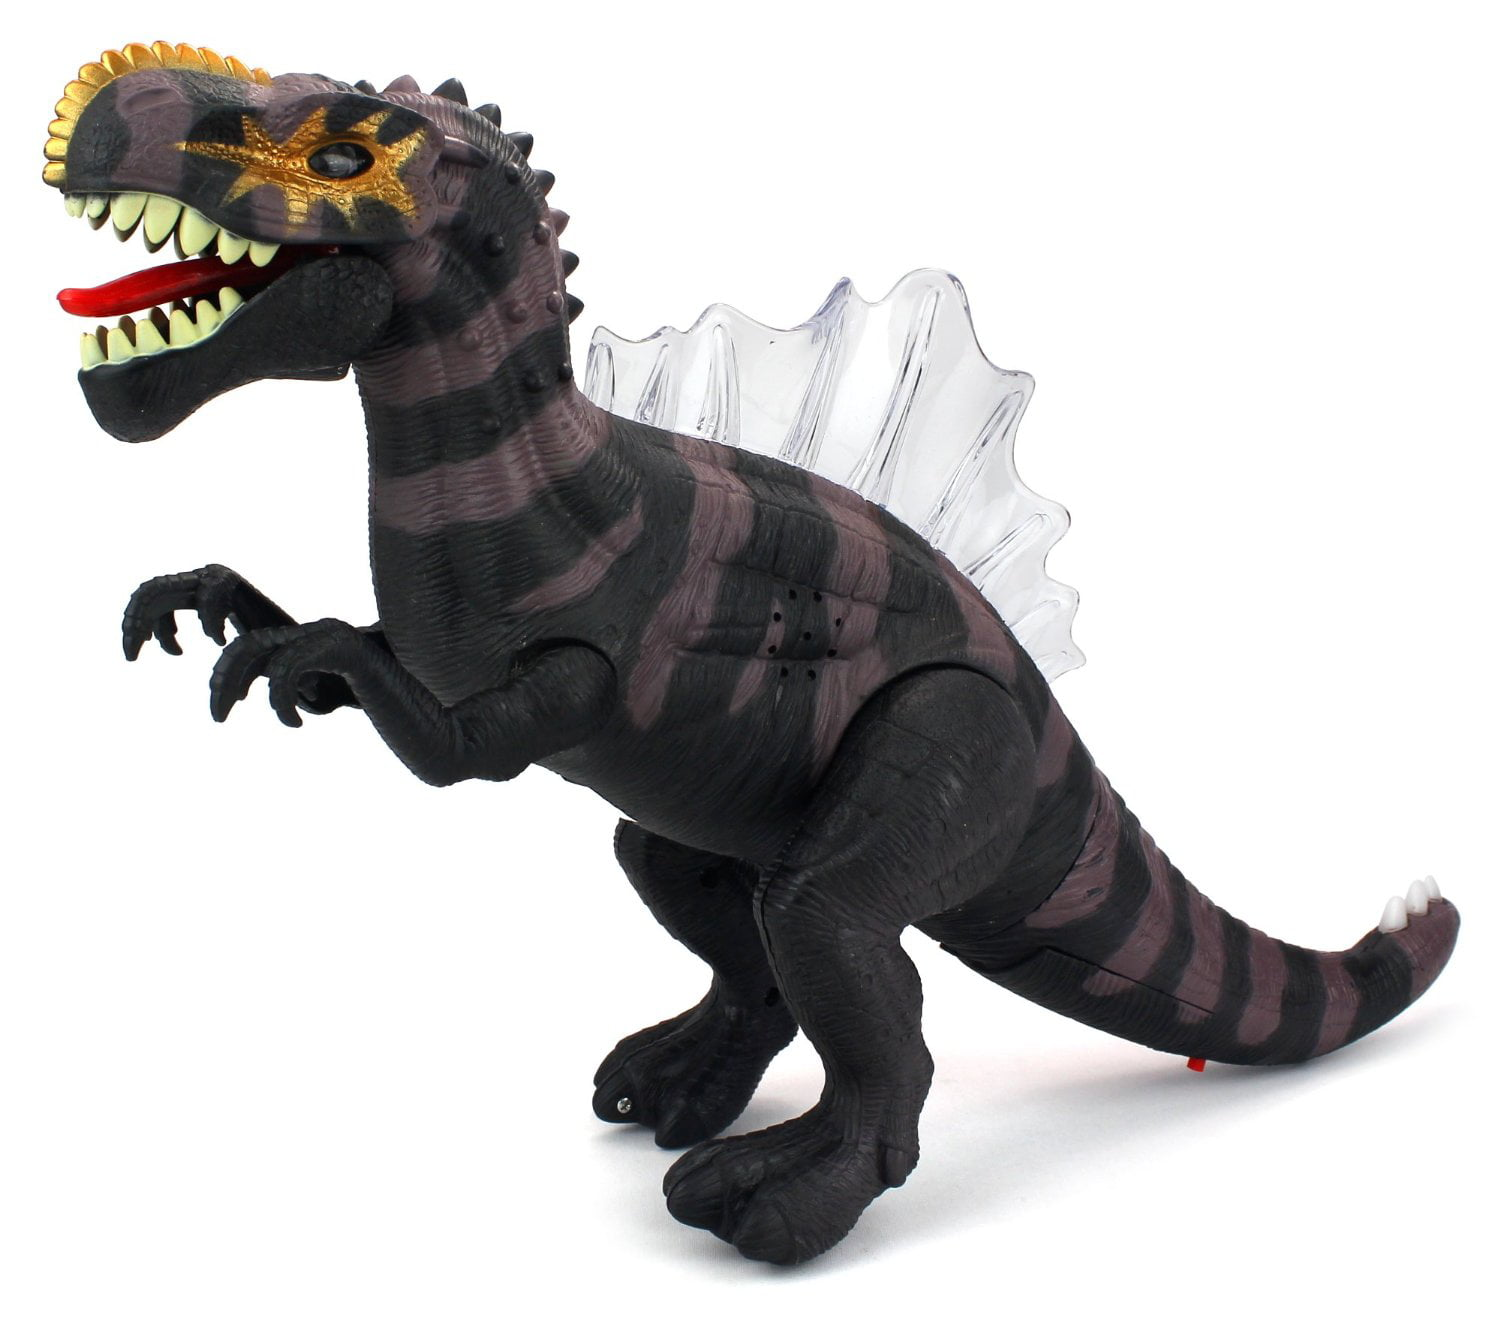 Dino Kingdom Spinosaurus Battery Operated Walking Toy Dinosaur Figure w  Realistic Movement, Lights and Sounds... by Velocity Toys